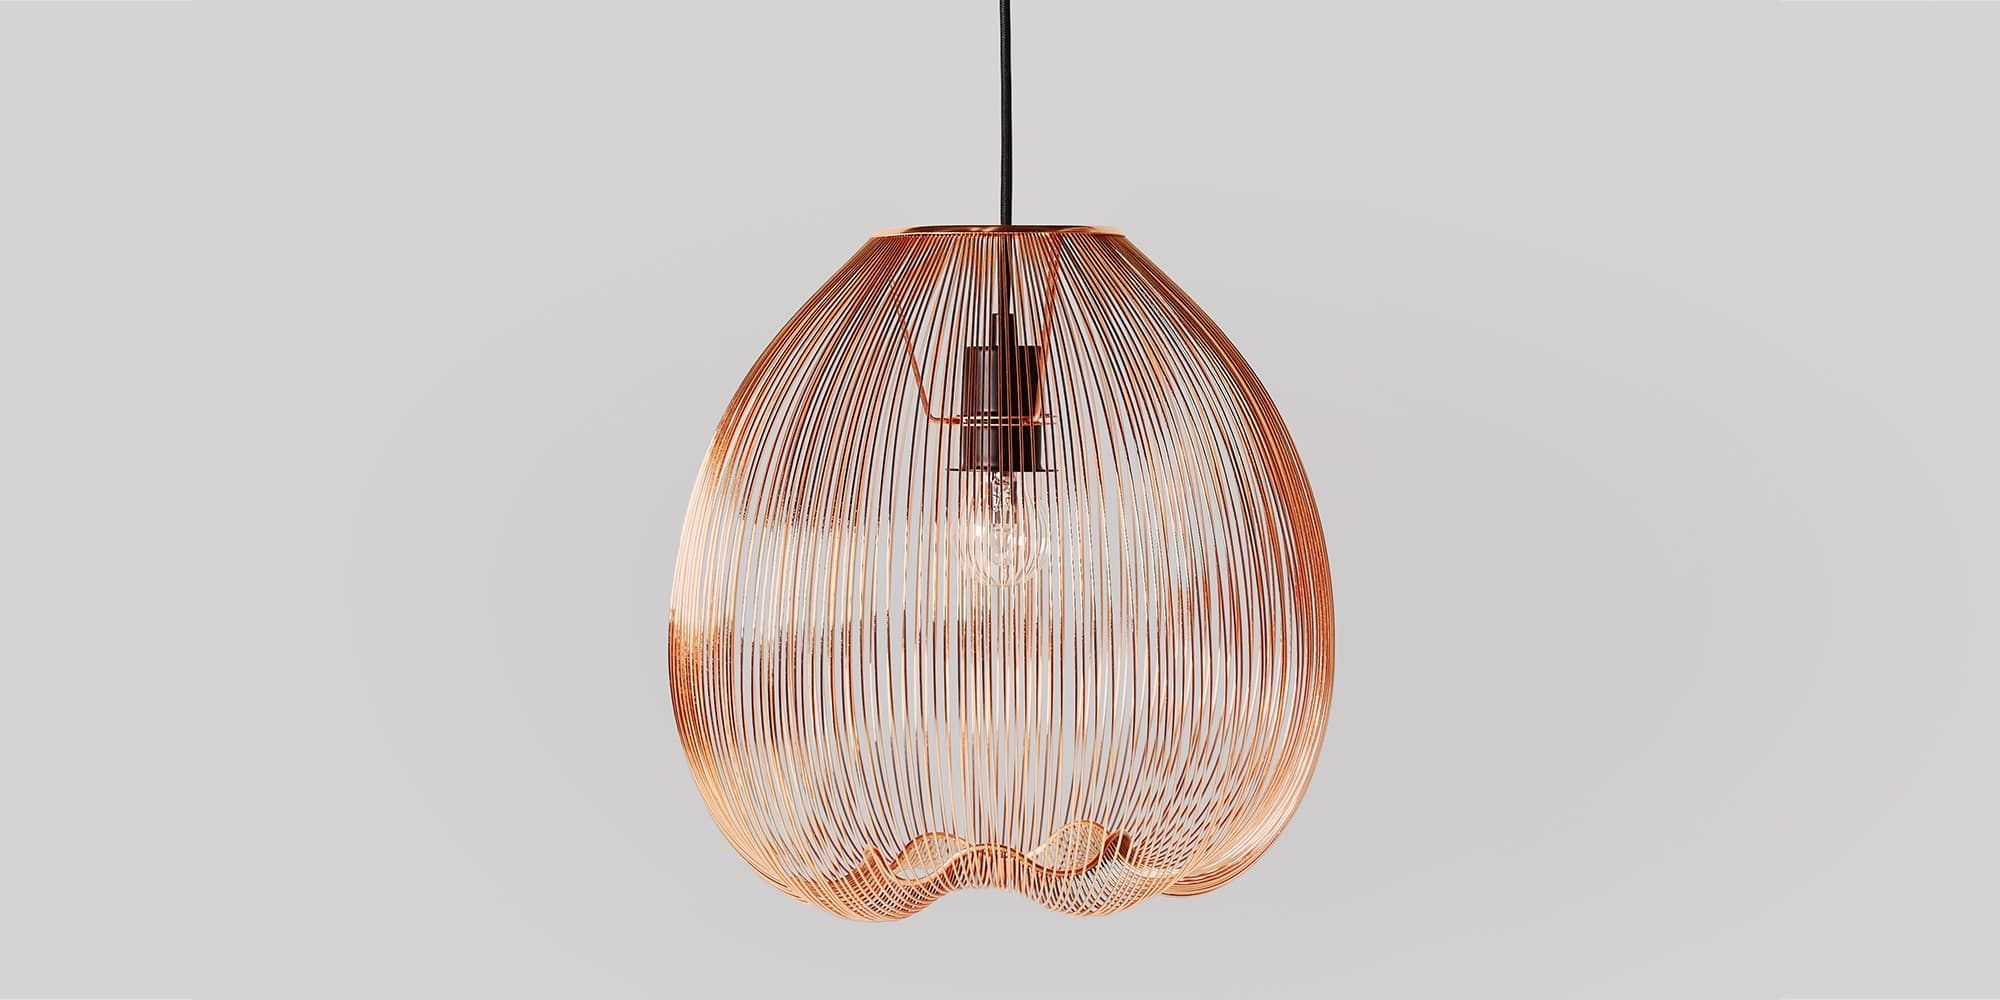 Hängeleuchte Obi Obi L I G H T I N G Pendants Large Pendant Lighting Pendants